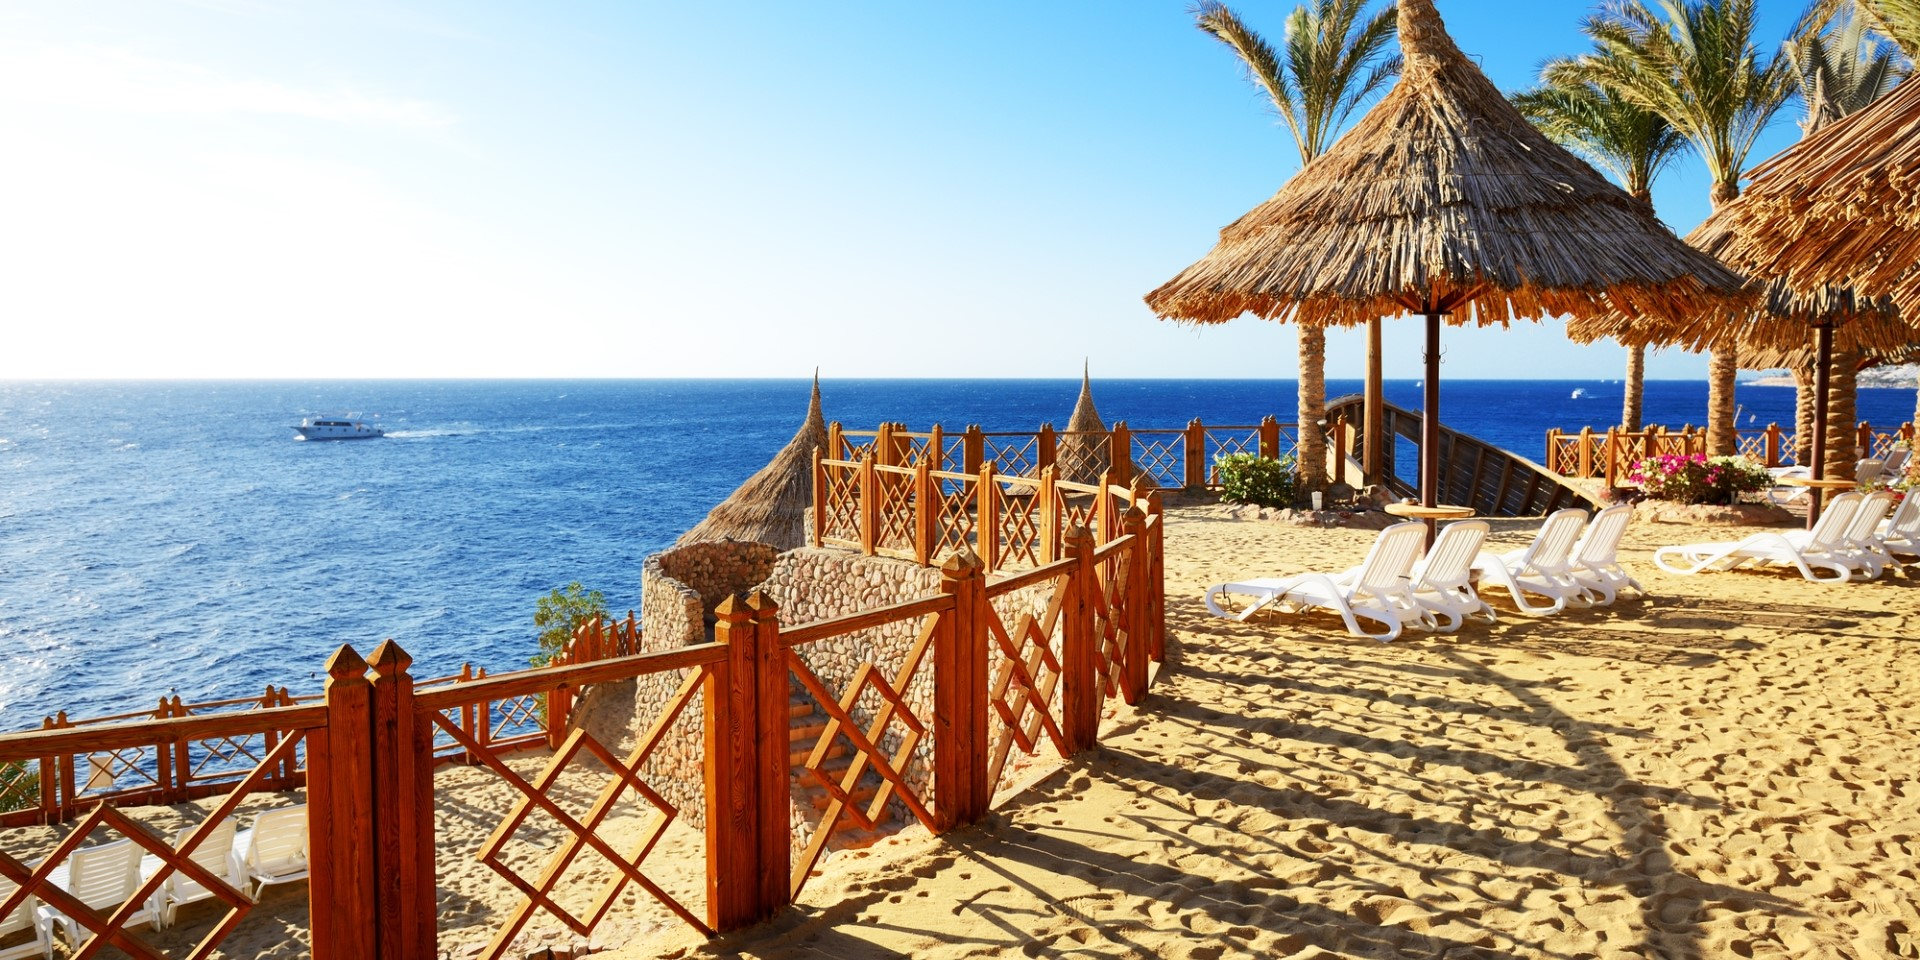 Vacanze diving a Sharm el-Sheikh | Immersioni sub in Mar Rosso